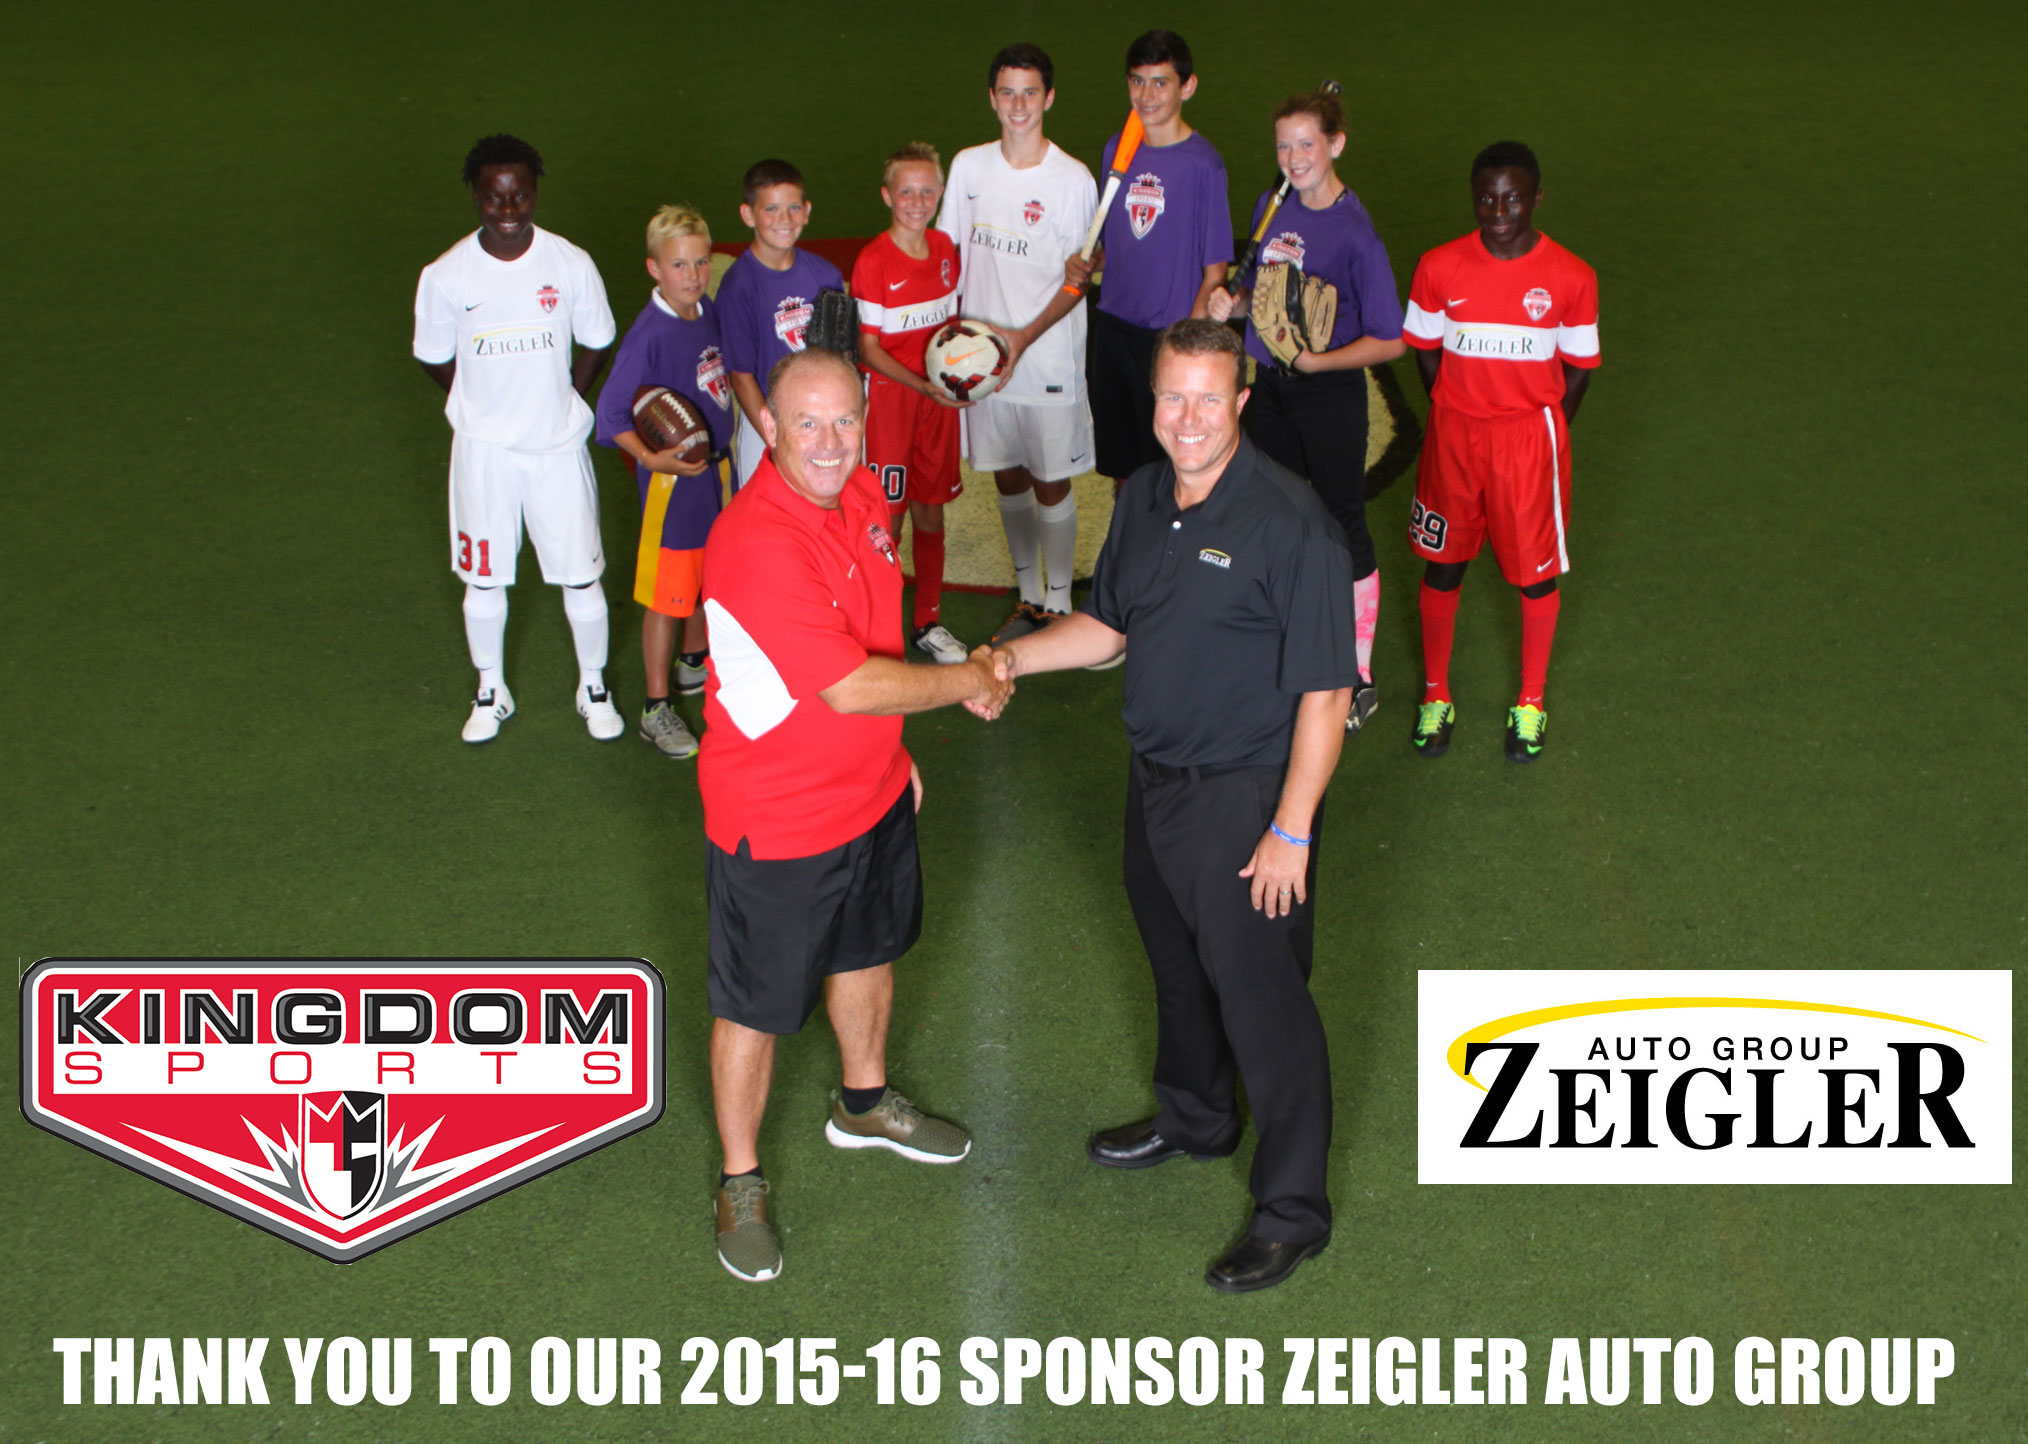 Zeigler Auto Group and Kingdom Sports